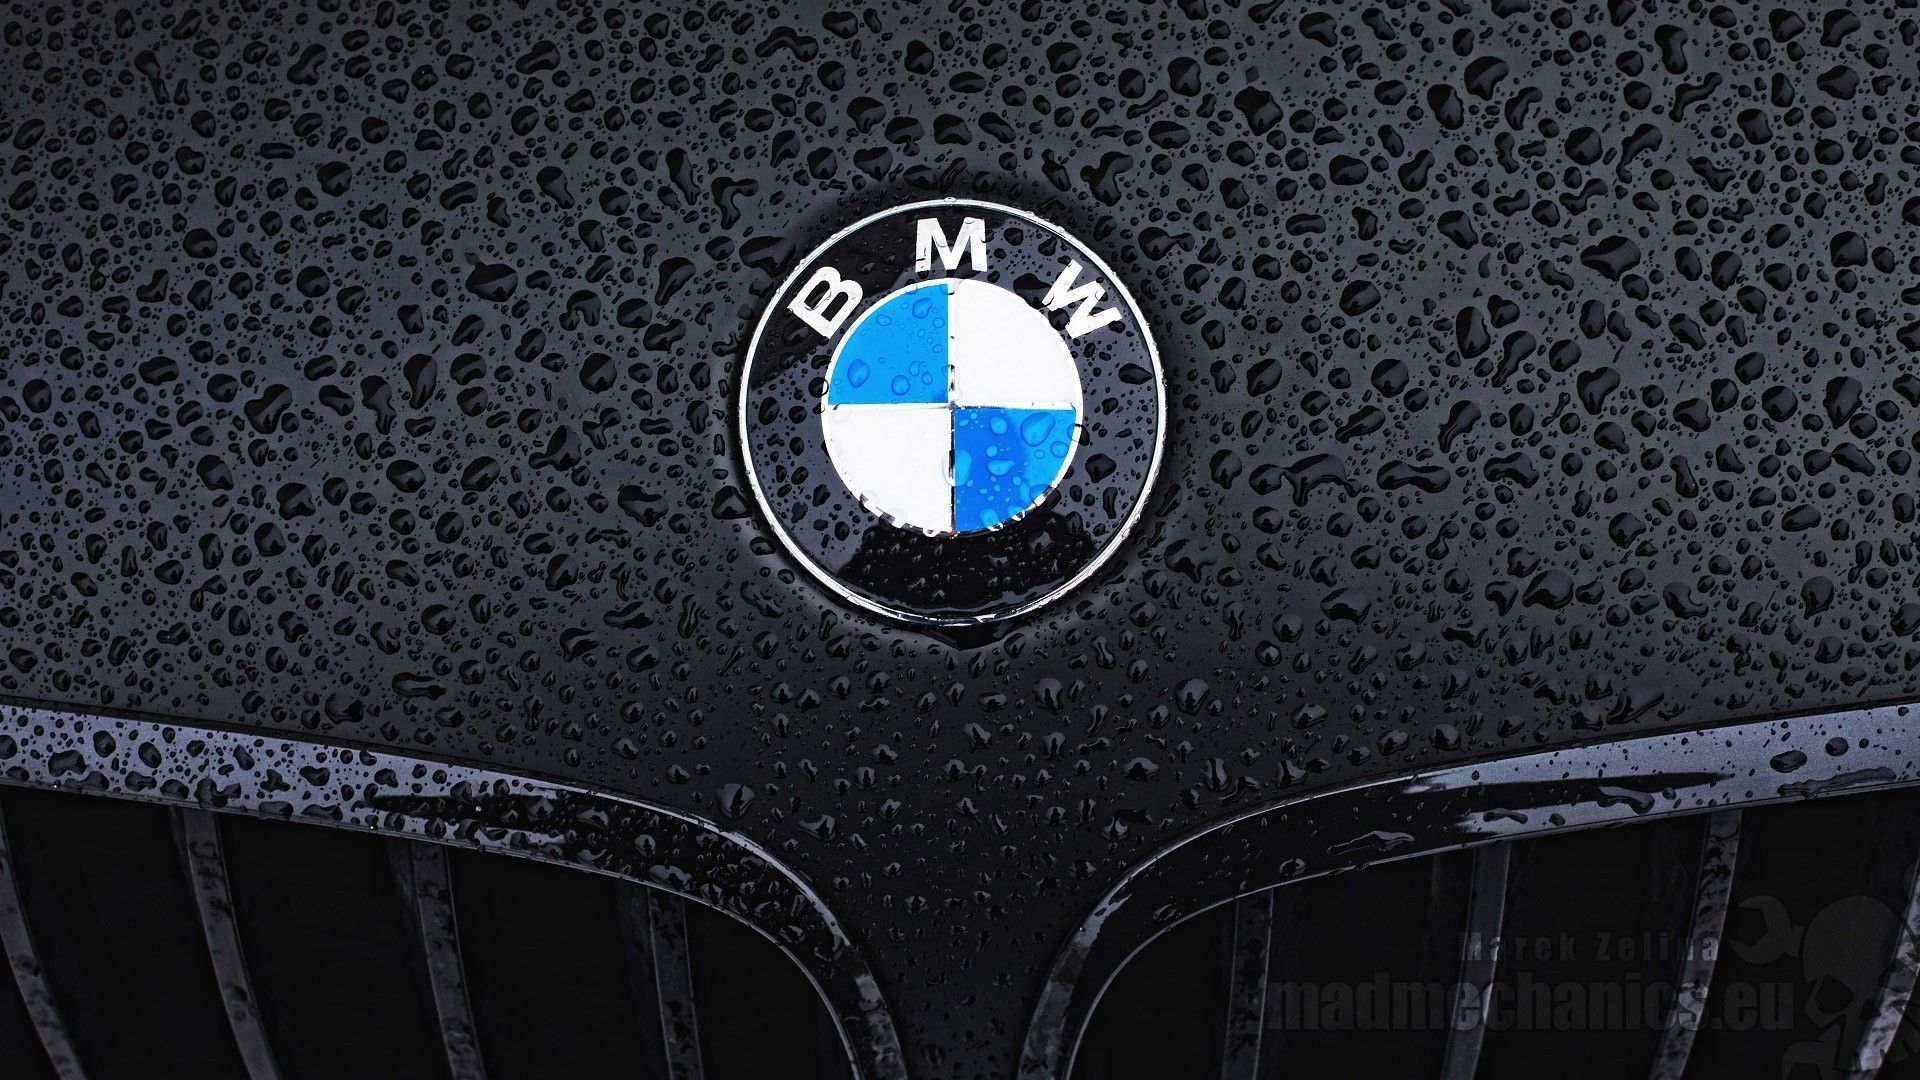 BMW M Logo Wallpapers - Wallpaper Cave | All Wallpapers ...